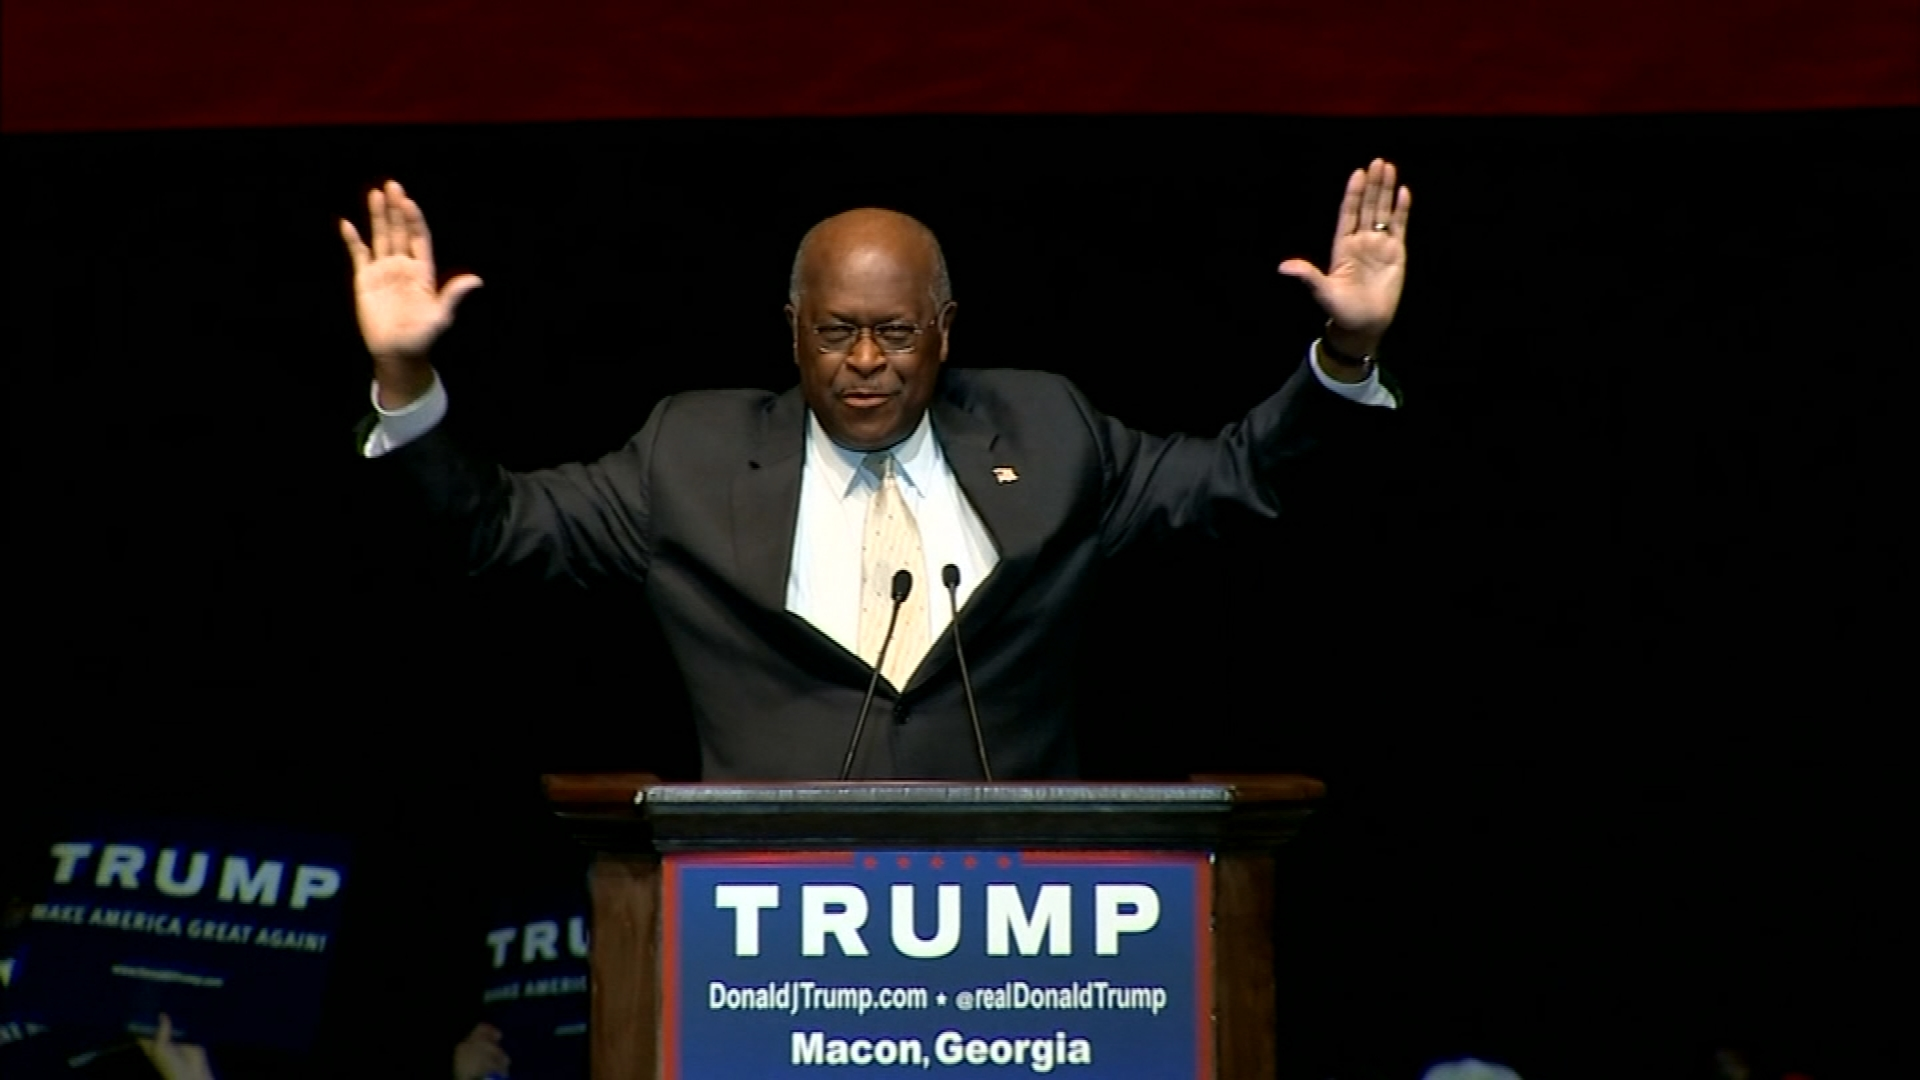 https://www.9and10news.com/content/uploads/2020/07/HERMAN-CAIN-DIES-FROM-COVID-VO-12.transfer.jpg